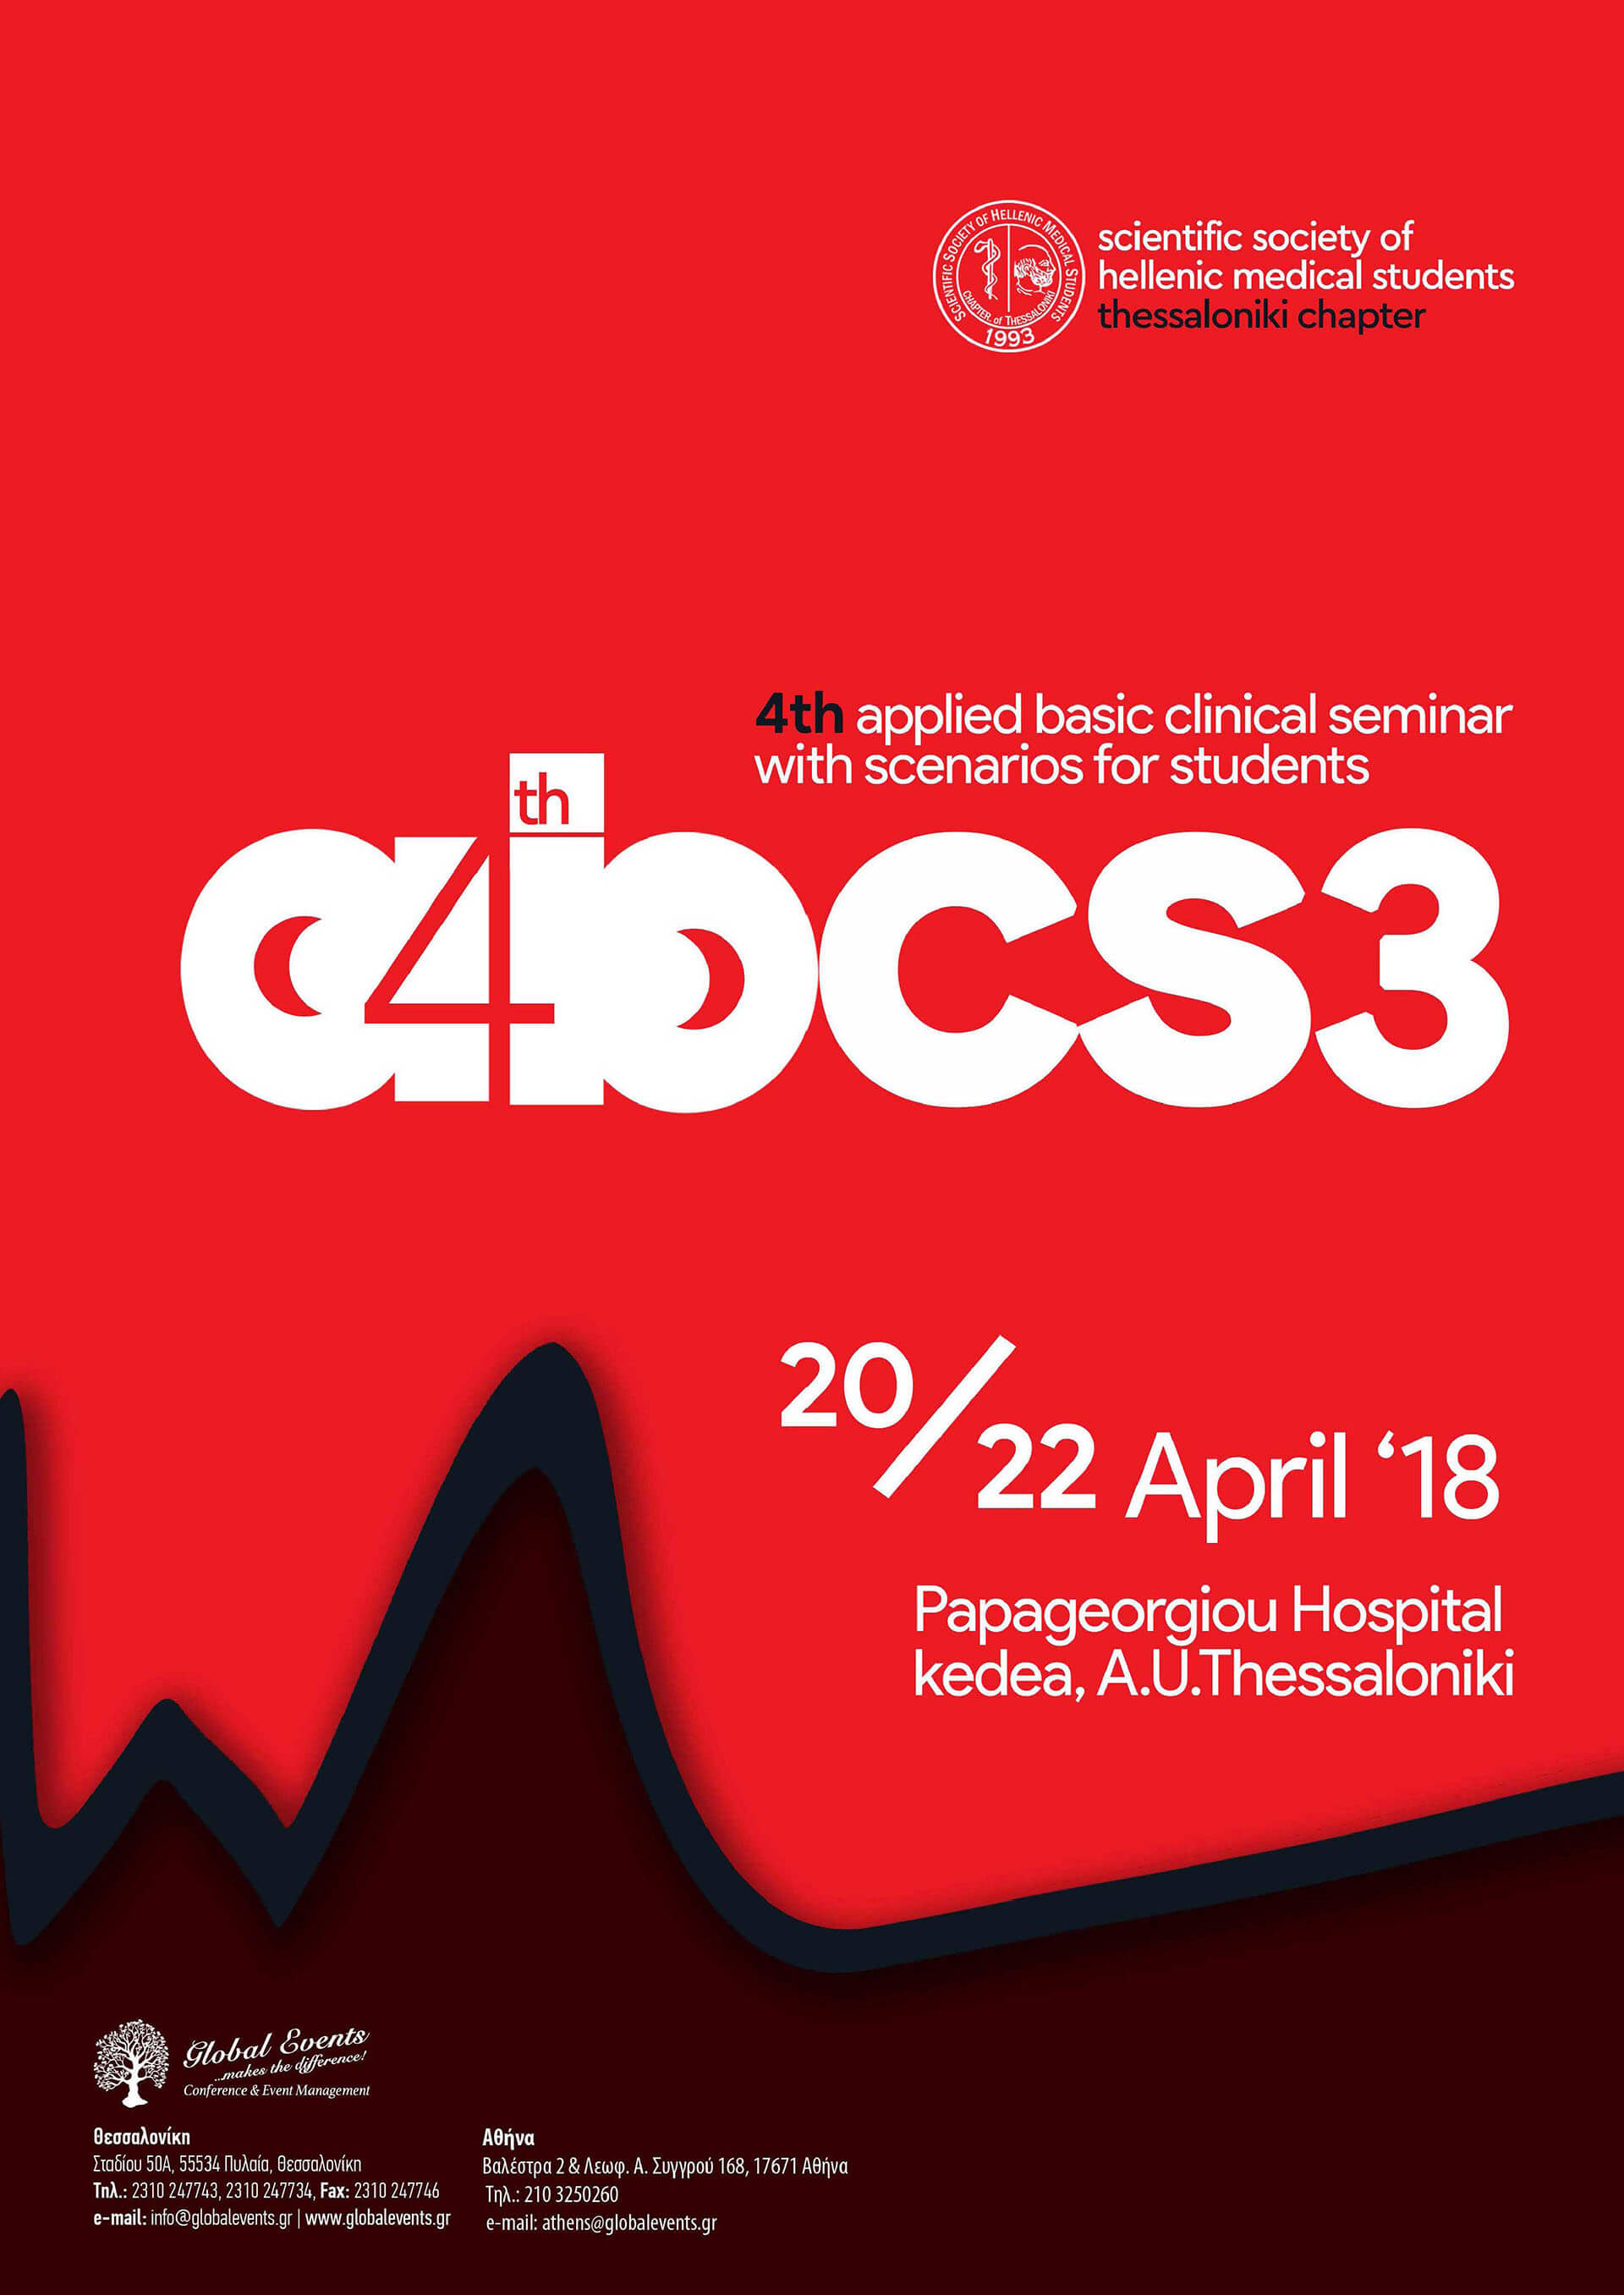 368. 4th ABCS3 (Applied Basic Clinical Seminar with Scenarios for Students)